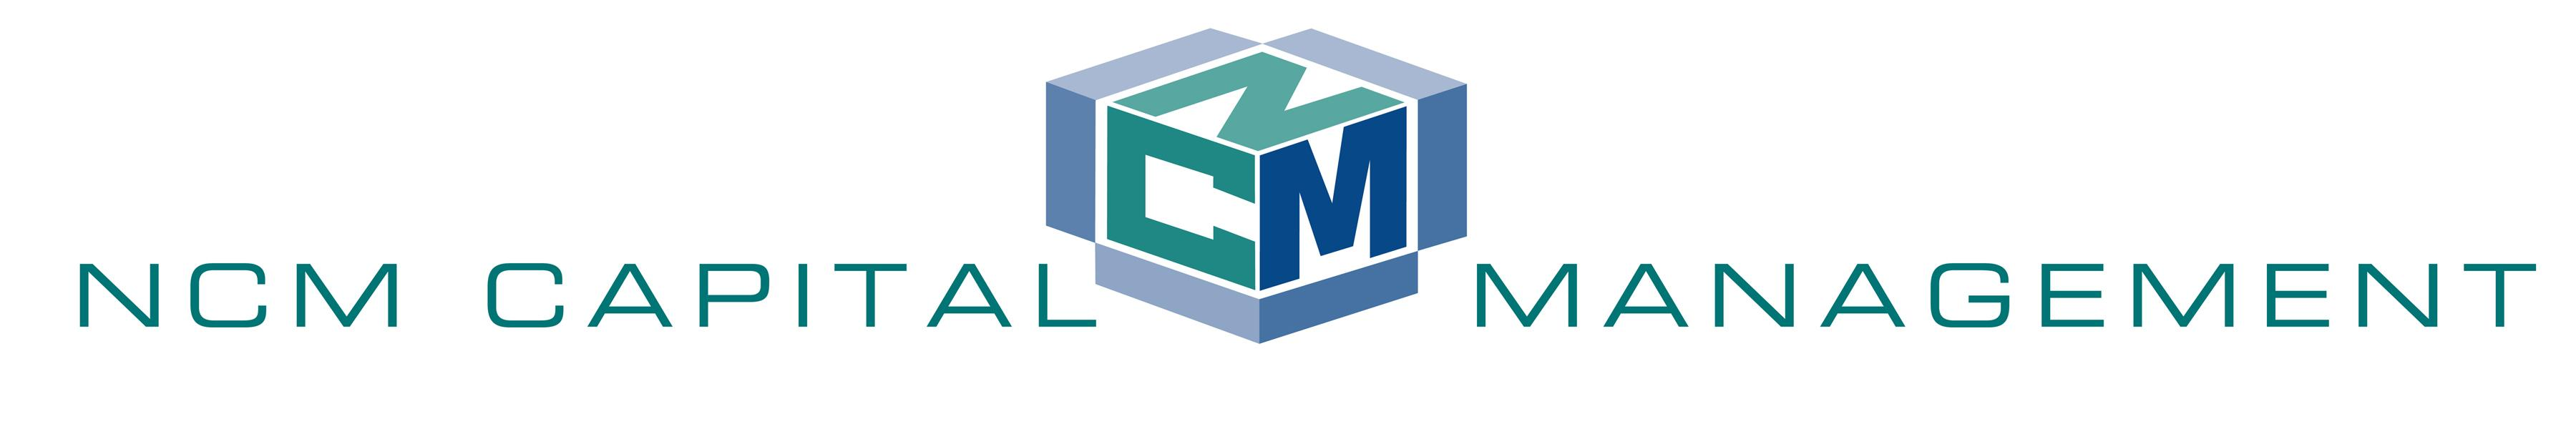 NCM Capital Management | Your Partner to Financial Success